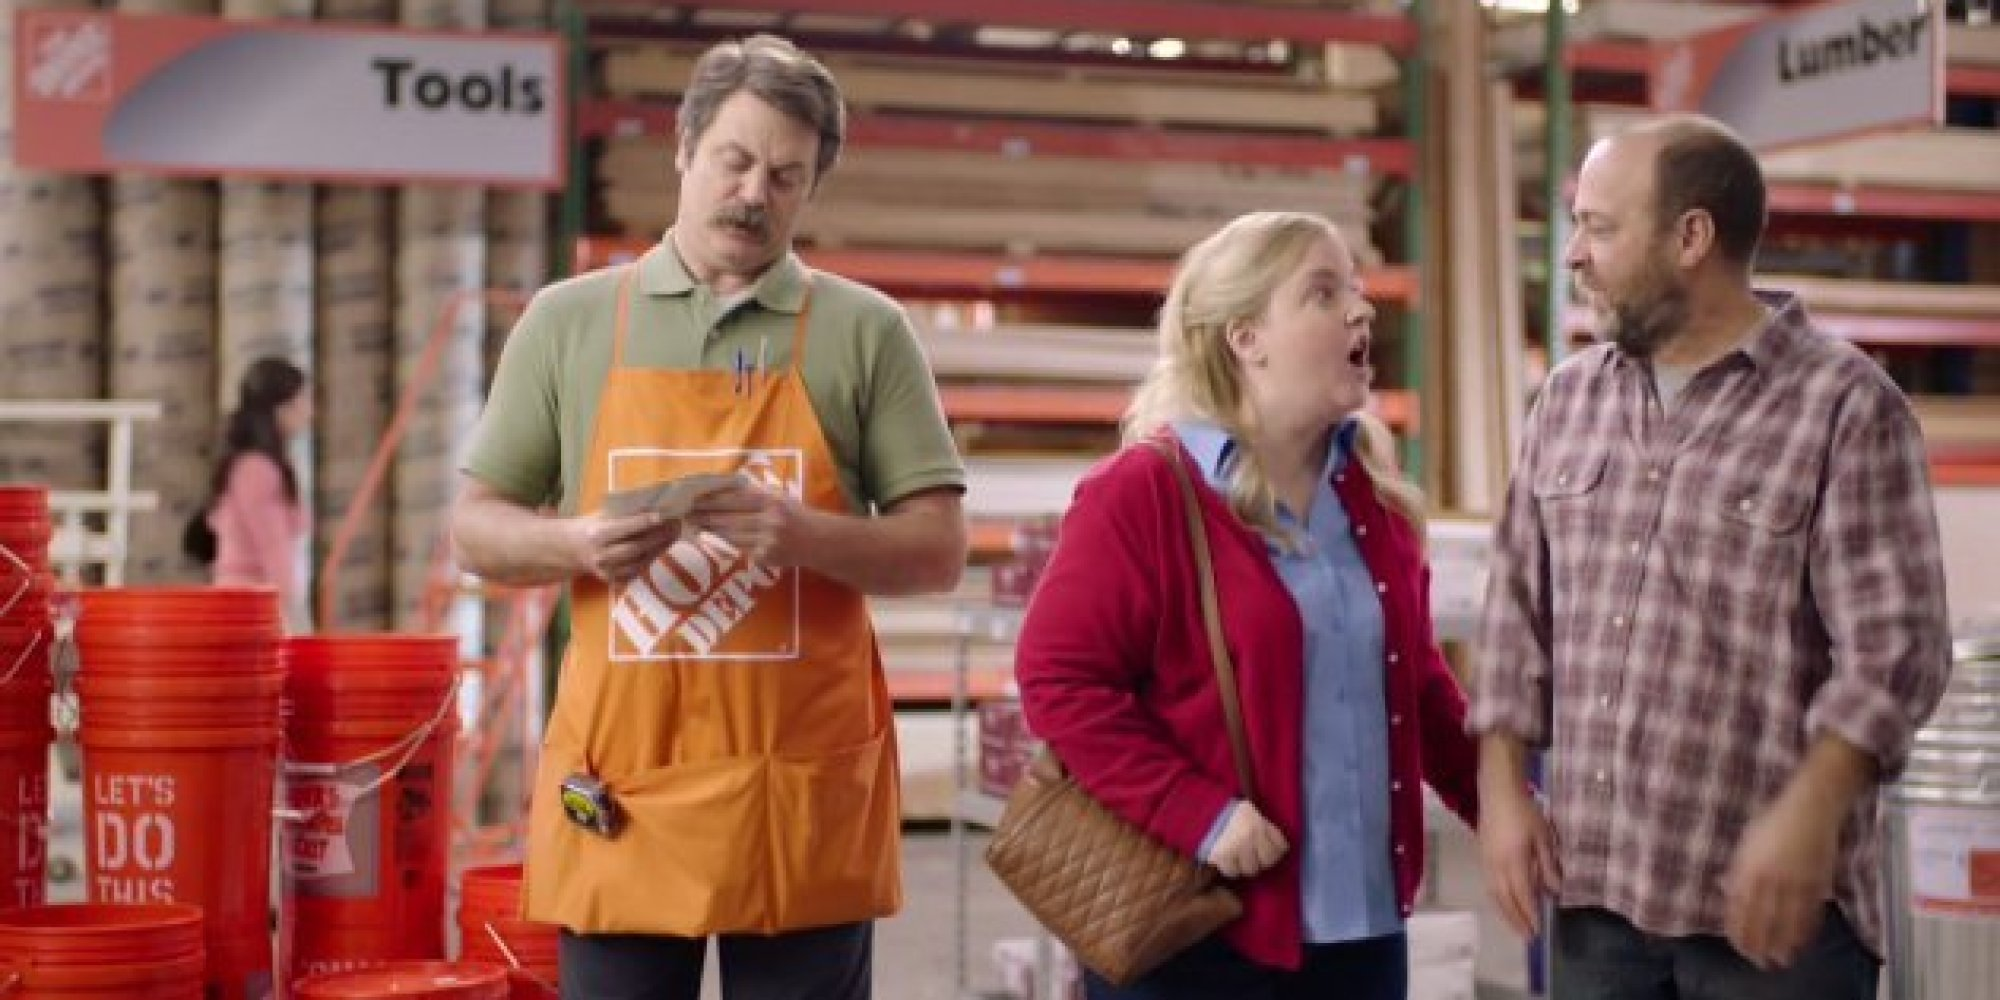 Home Depot Commercial : Home depot commercial images the tv